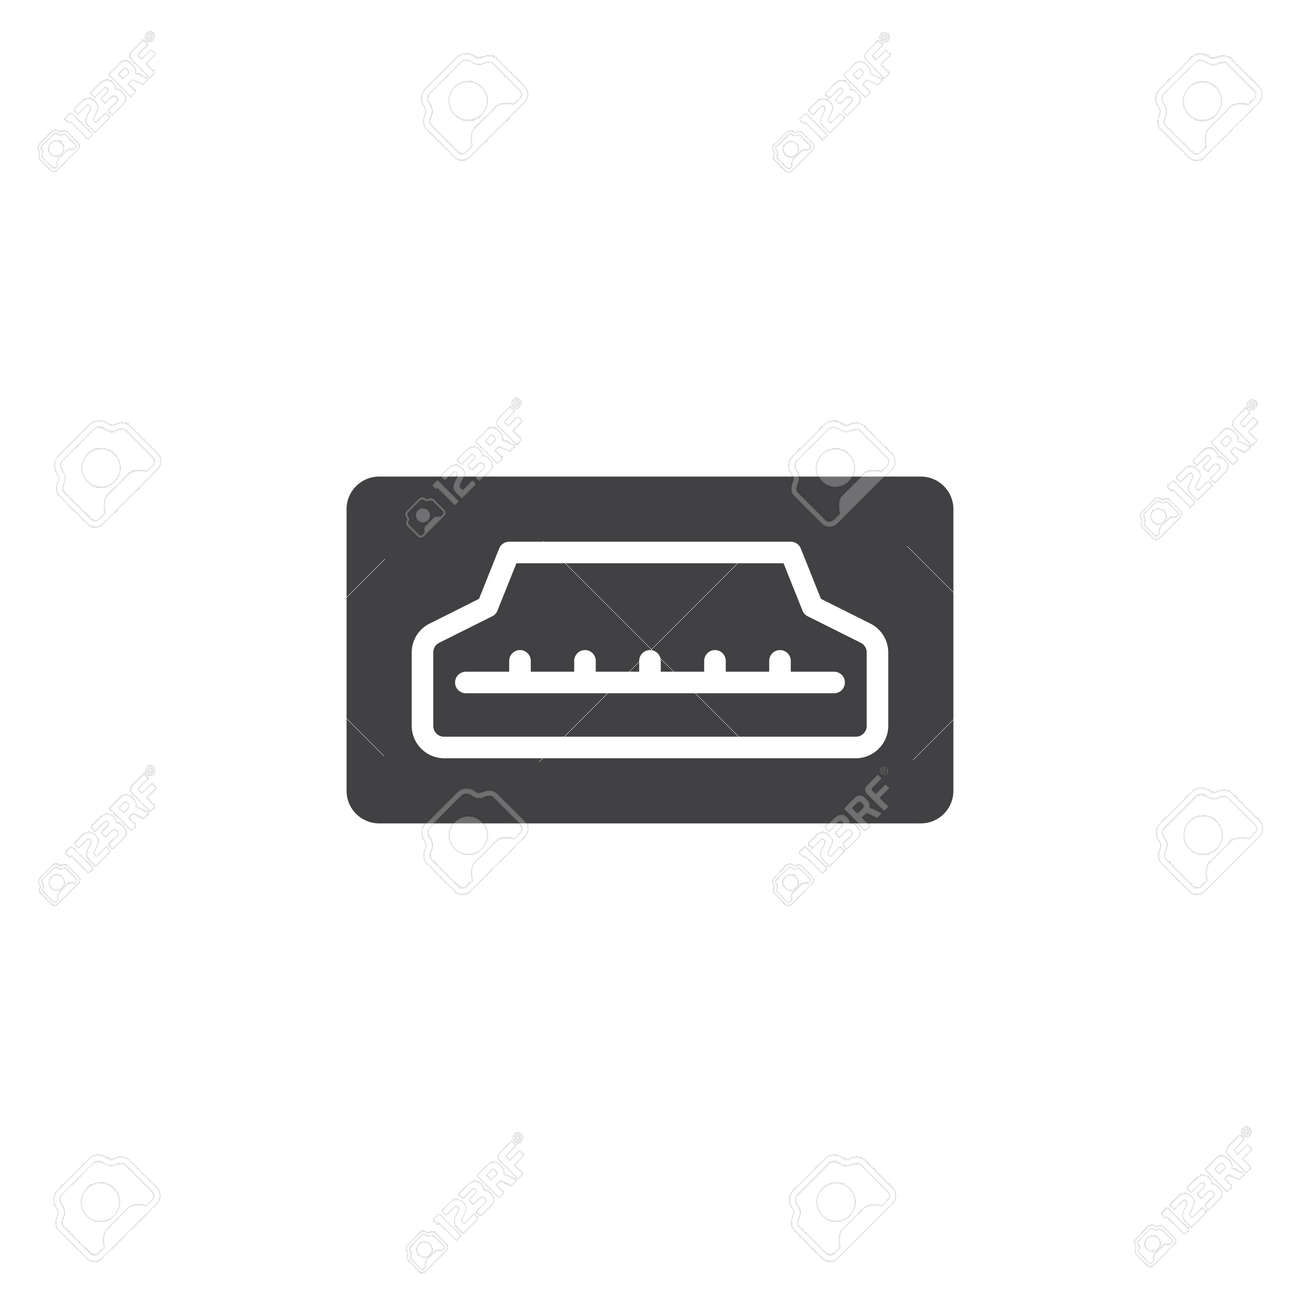 hdmi port icon vector filled flat sign solid pictogram isolated royalty free cliparts vectors and stock illustration image 94465712 hdmi port icon vector filled flat sign solid pictogram isolated